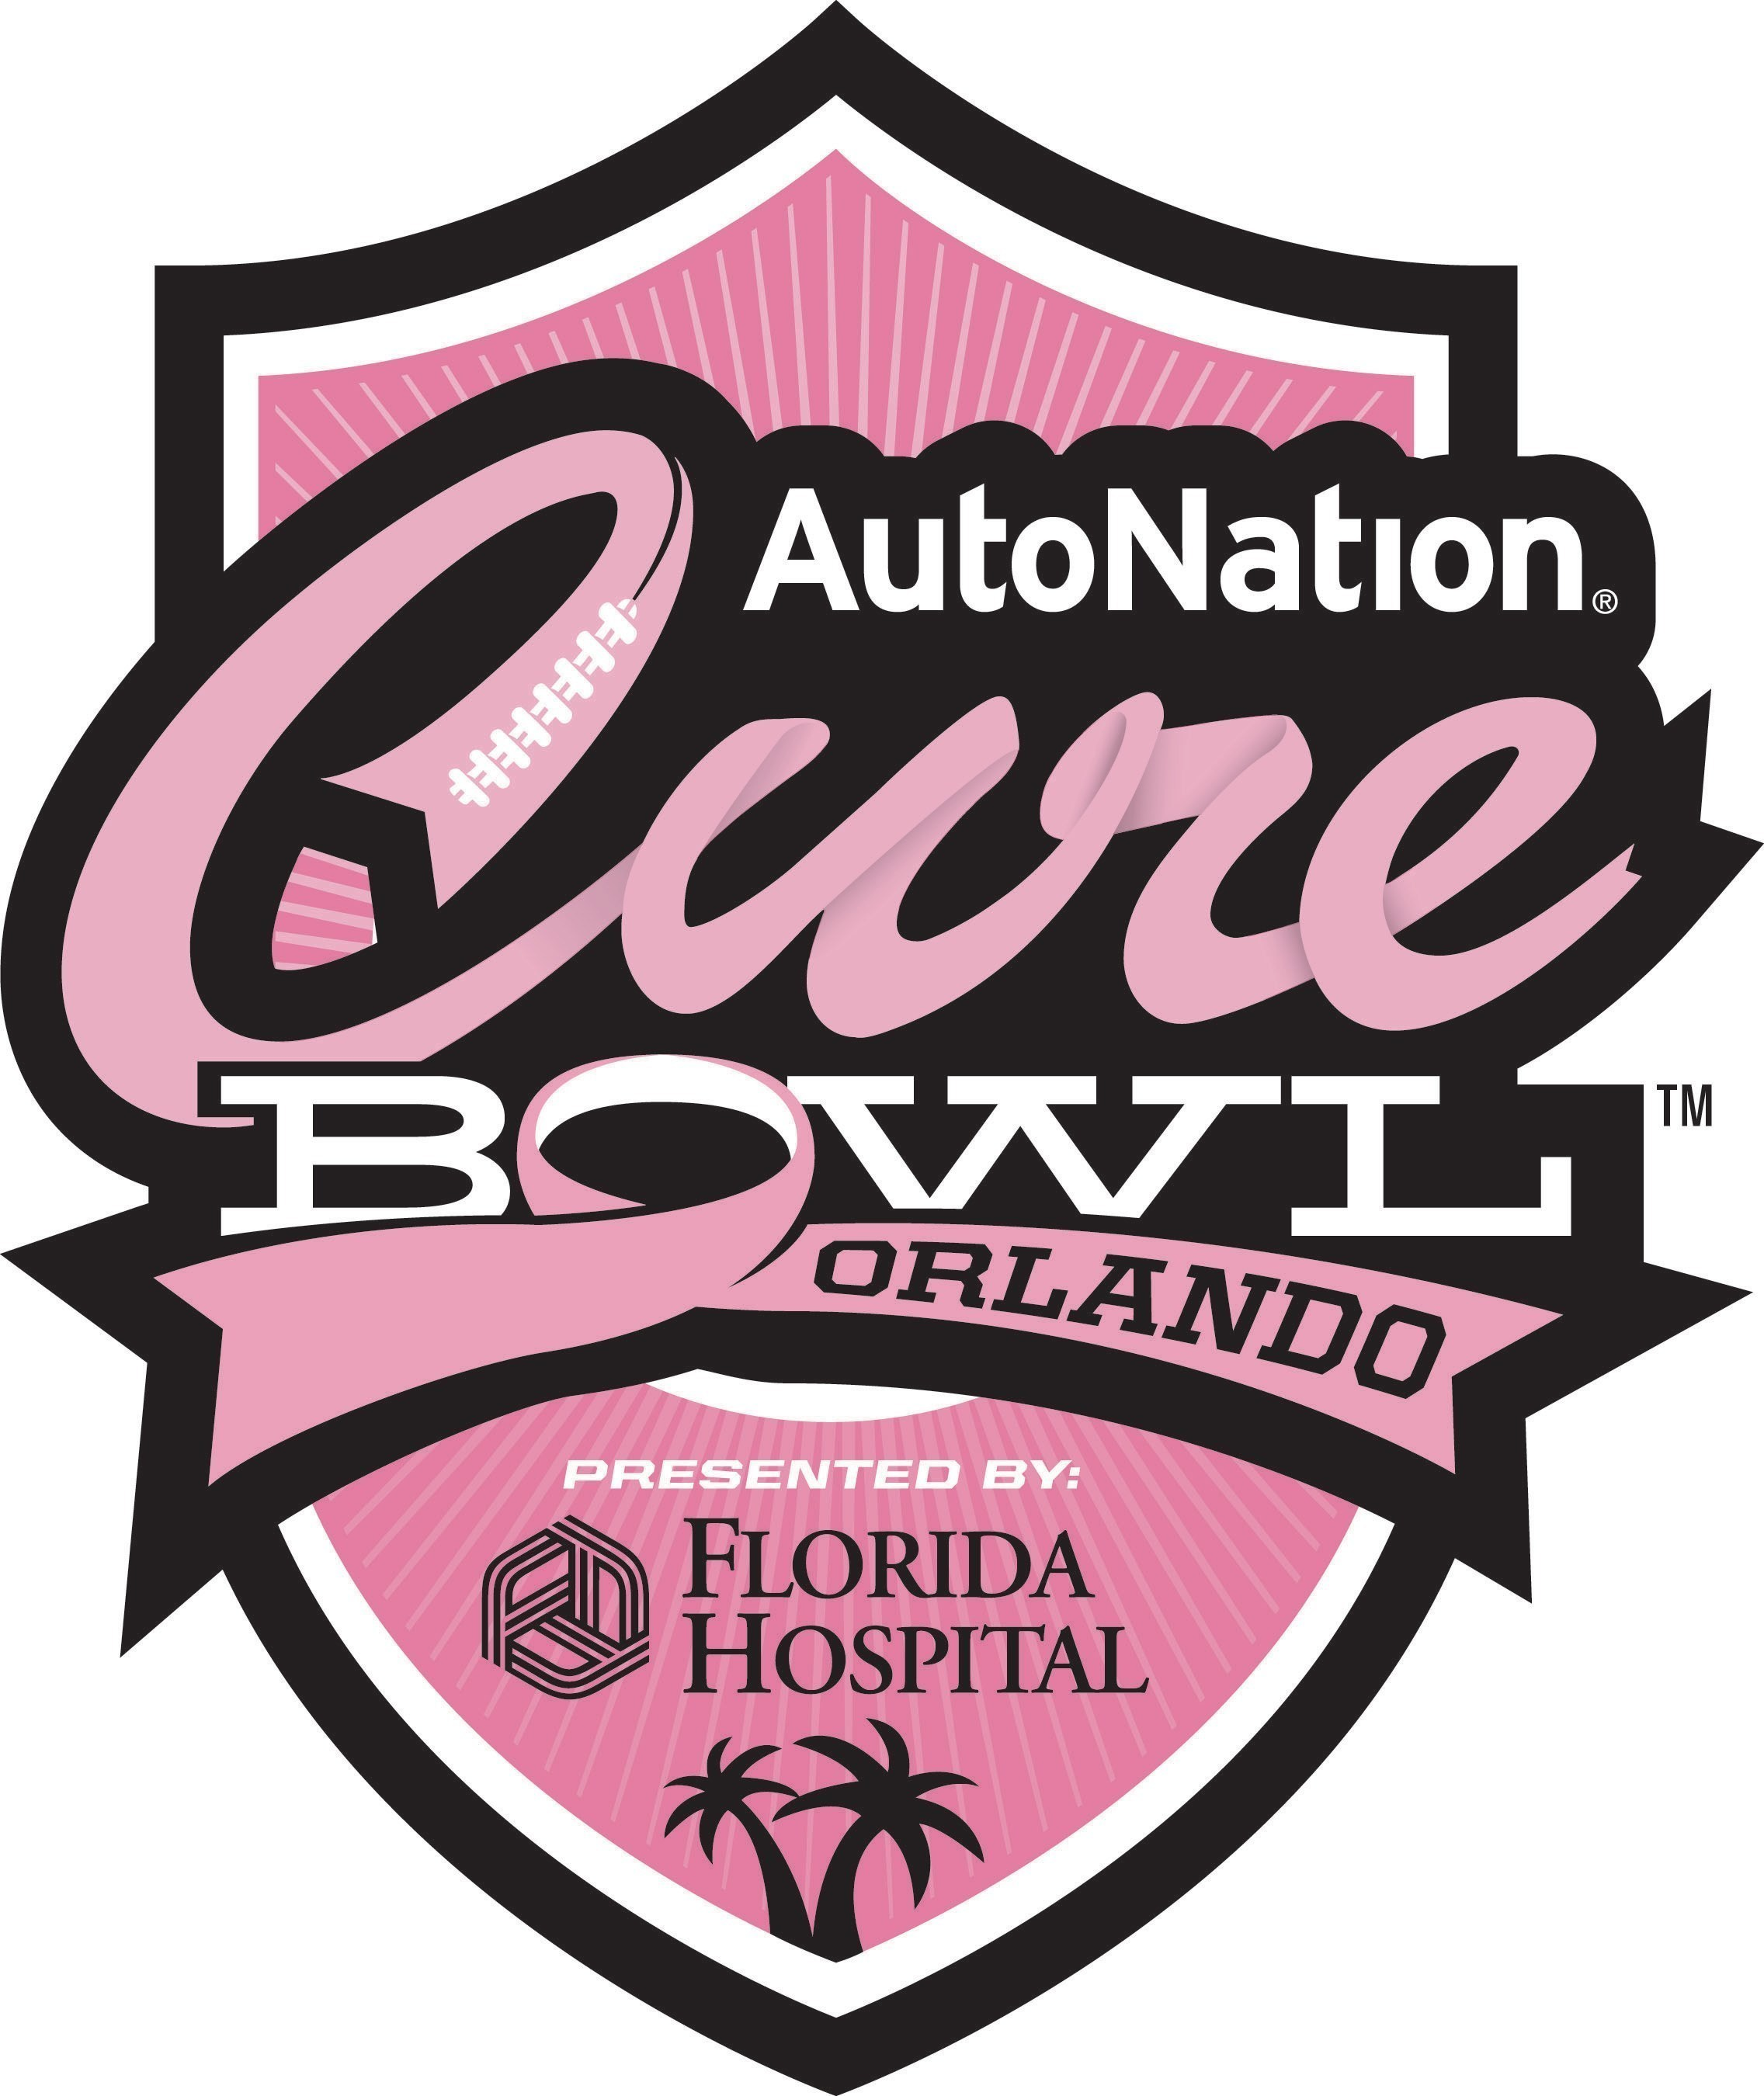 Billboard Chart-Topping Artist Joe Nichols to Perform at the Inaugural AutoNation Cure Bowl Tailgate Party and Concert